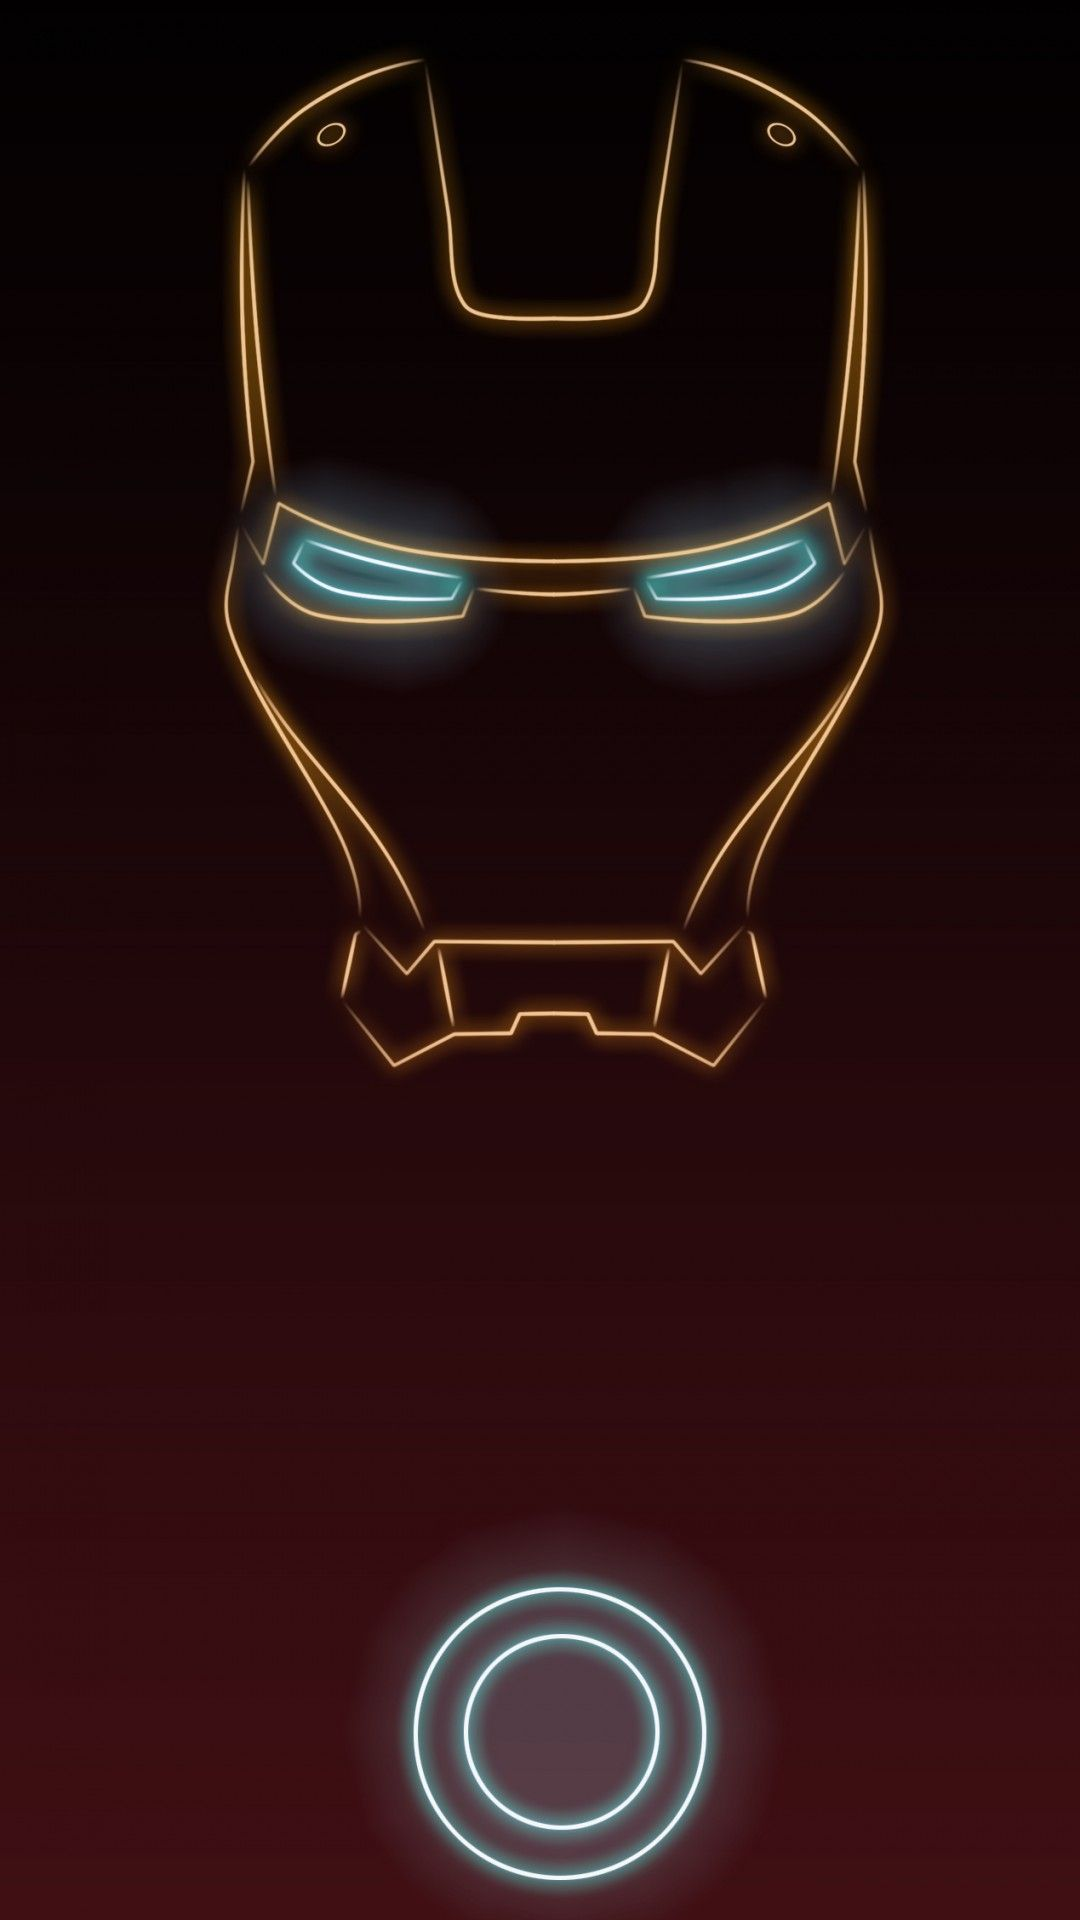 1080x1920 Iron Man Tap To See More Superheroes Glow With Neon